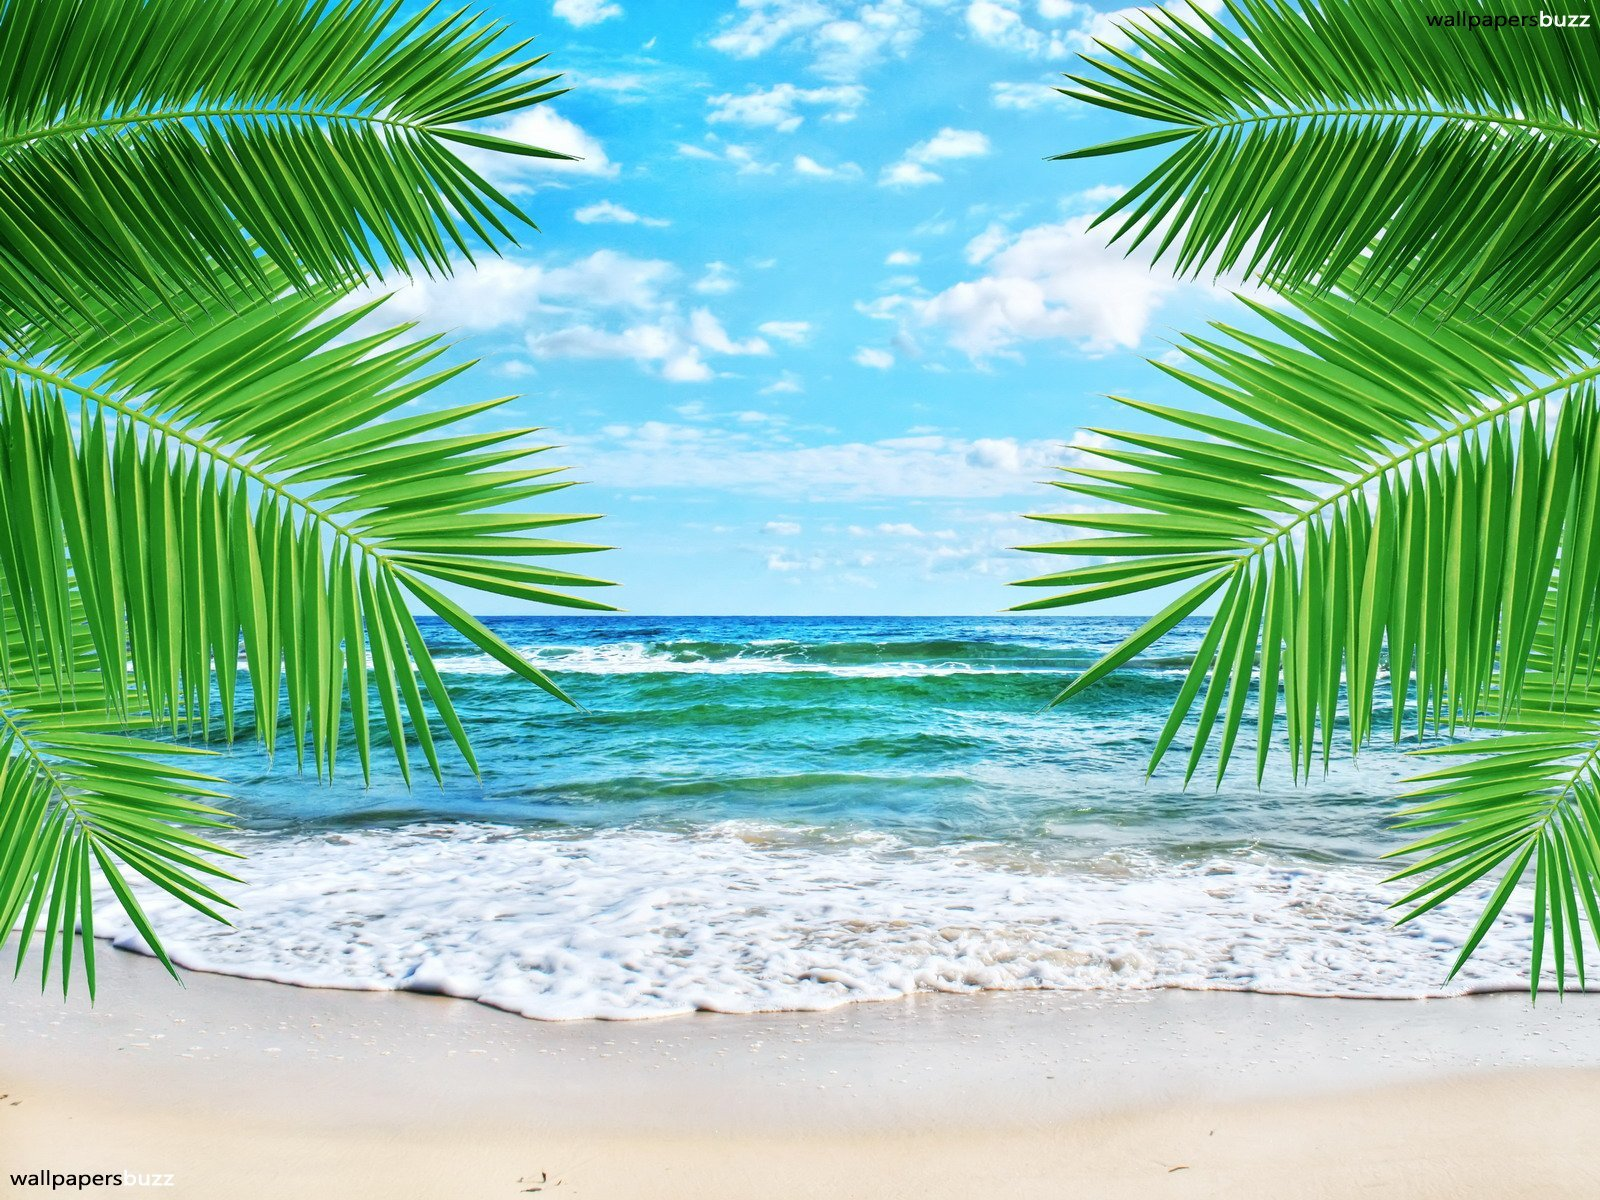 Hd Tropical Island Beach Paradise Wallpapers And Backgrounds: Tropical Computer Backgrounds